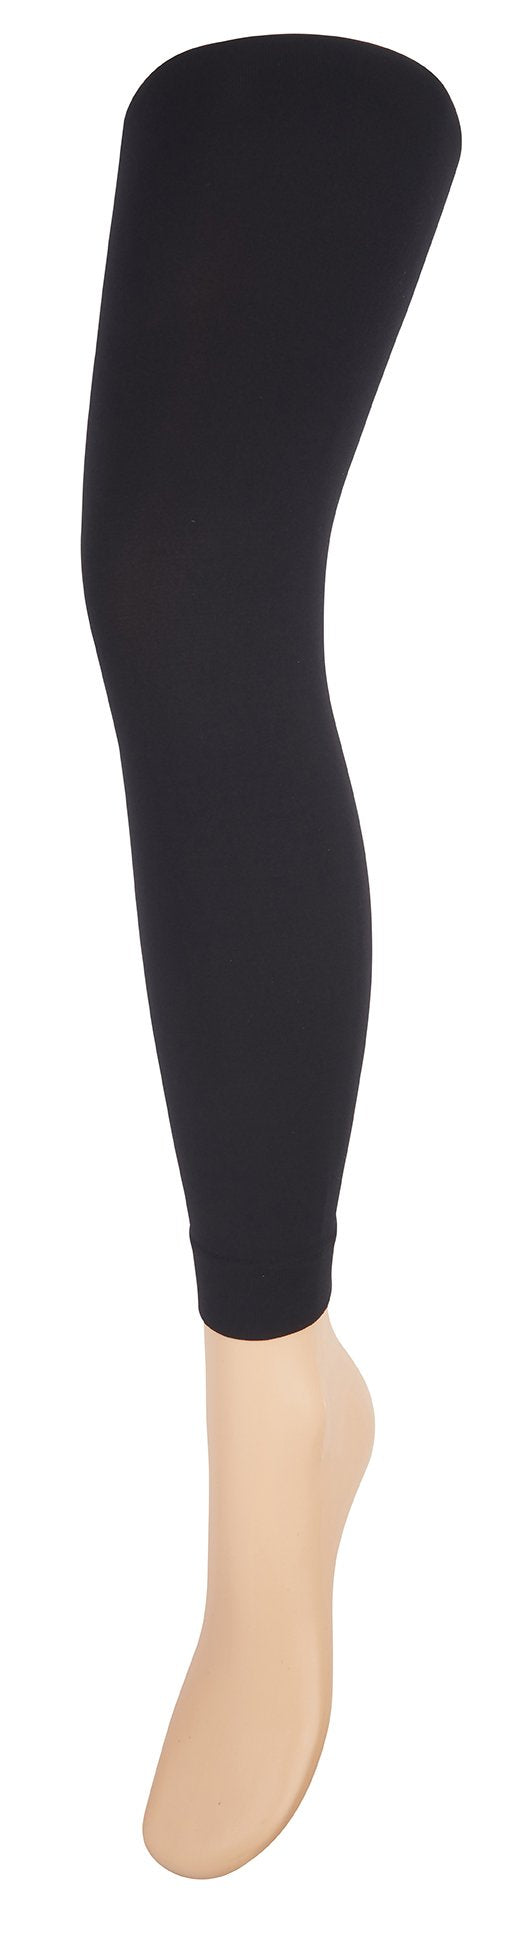 ELLE Anticellulite Black Opaque Leggings